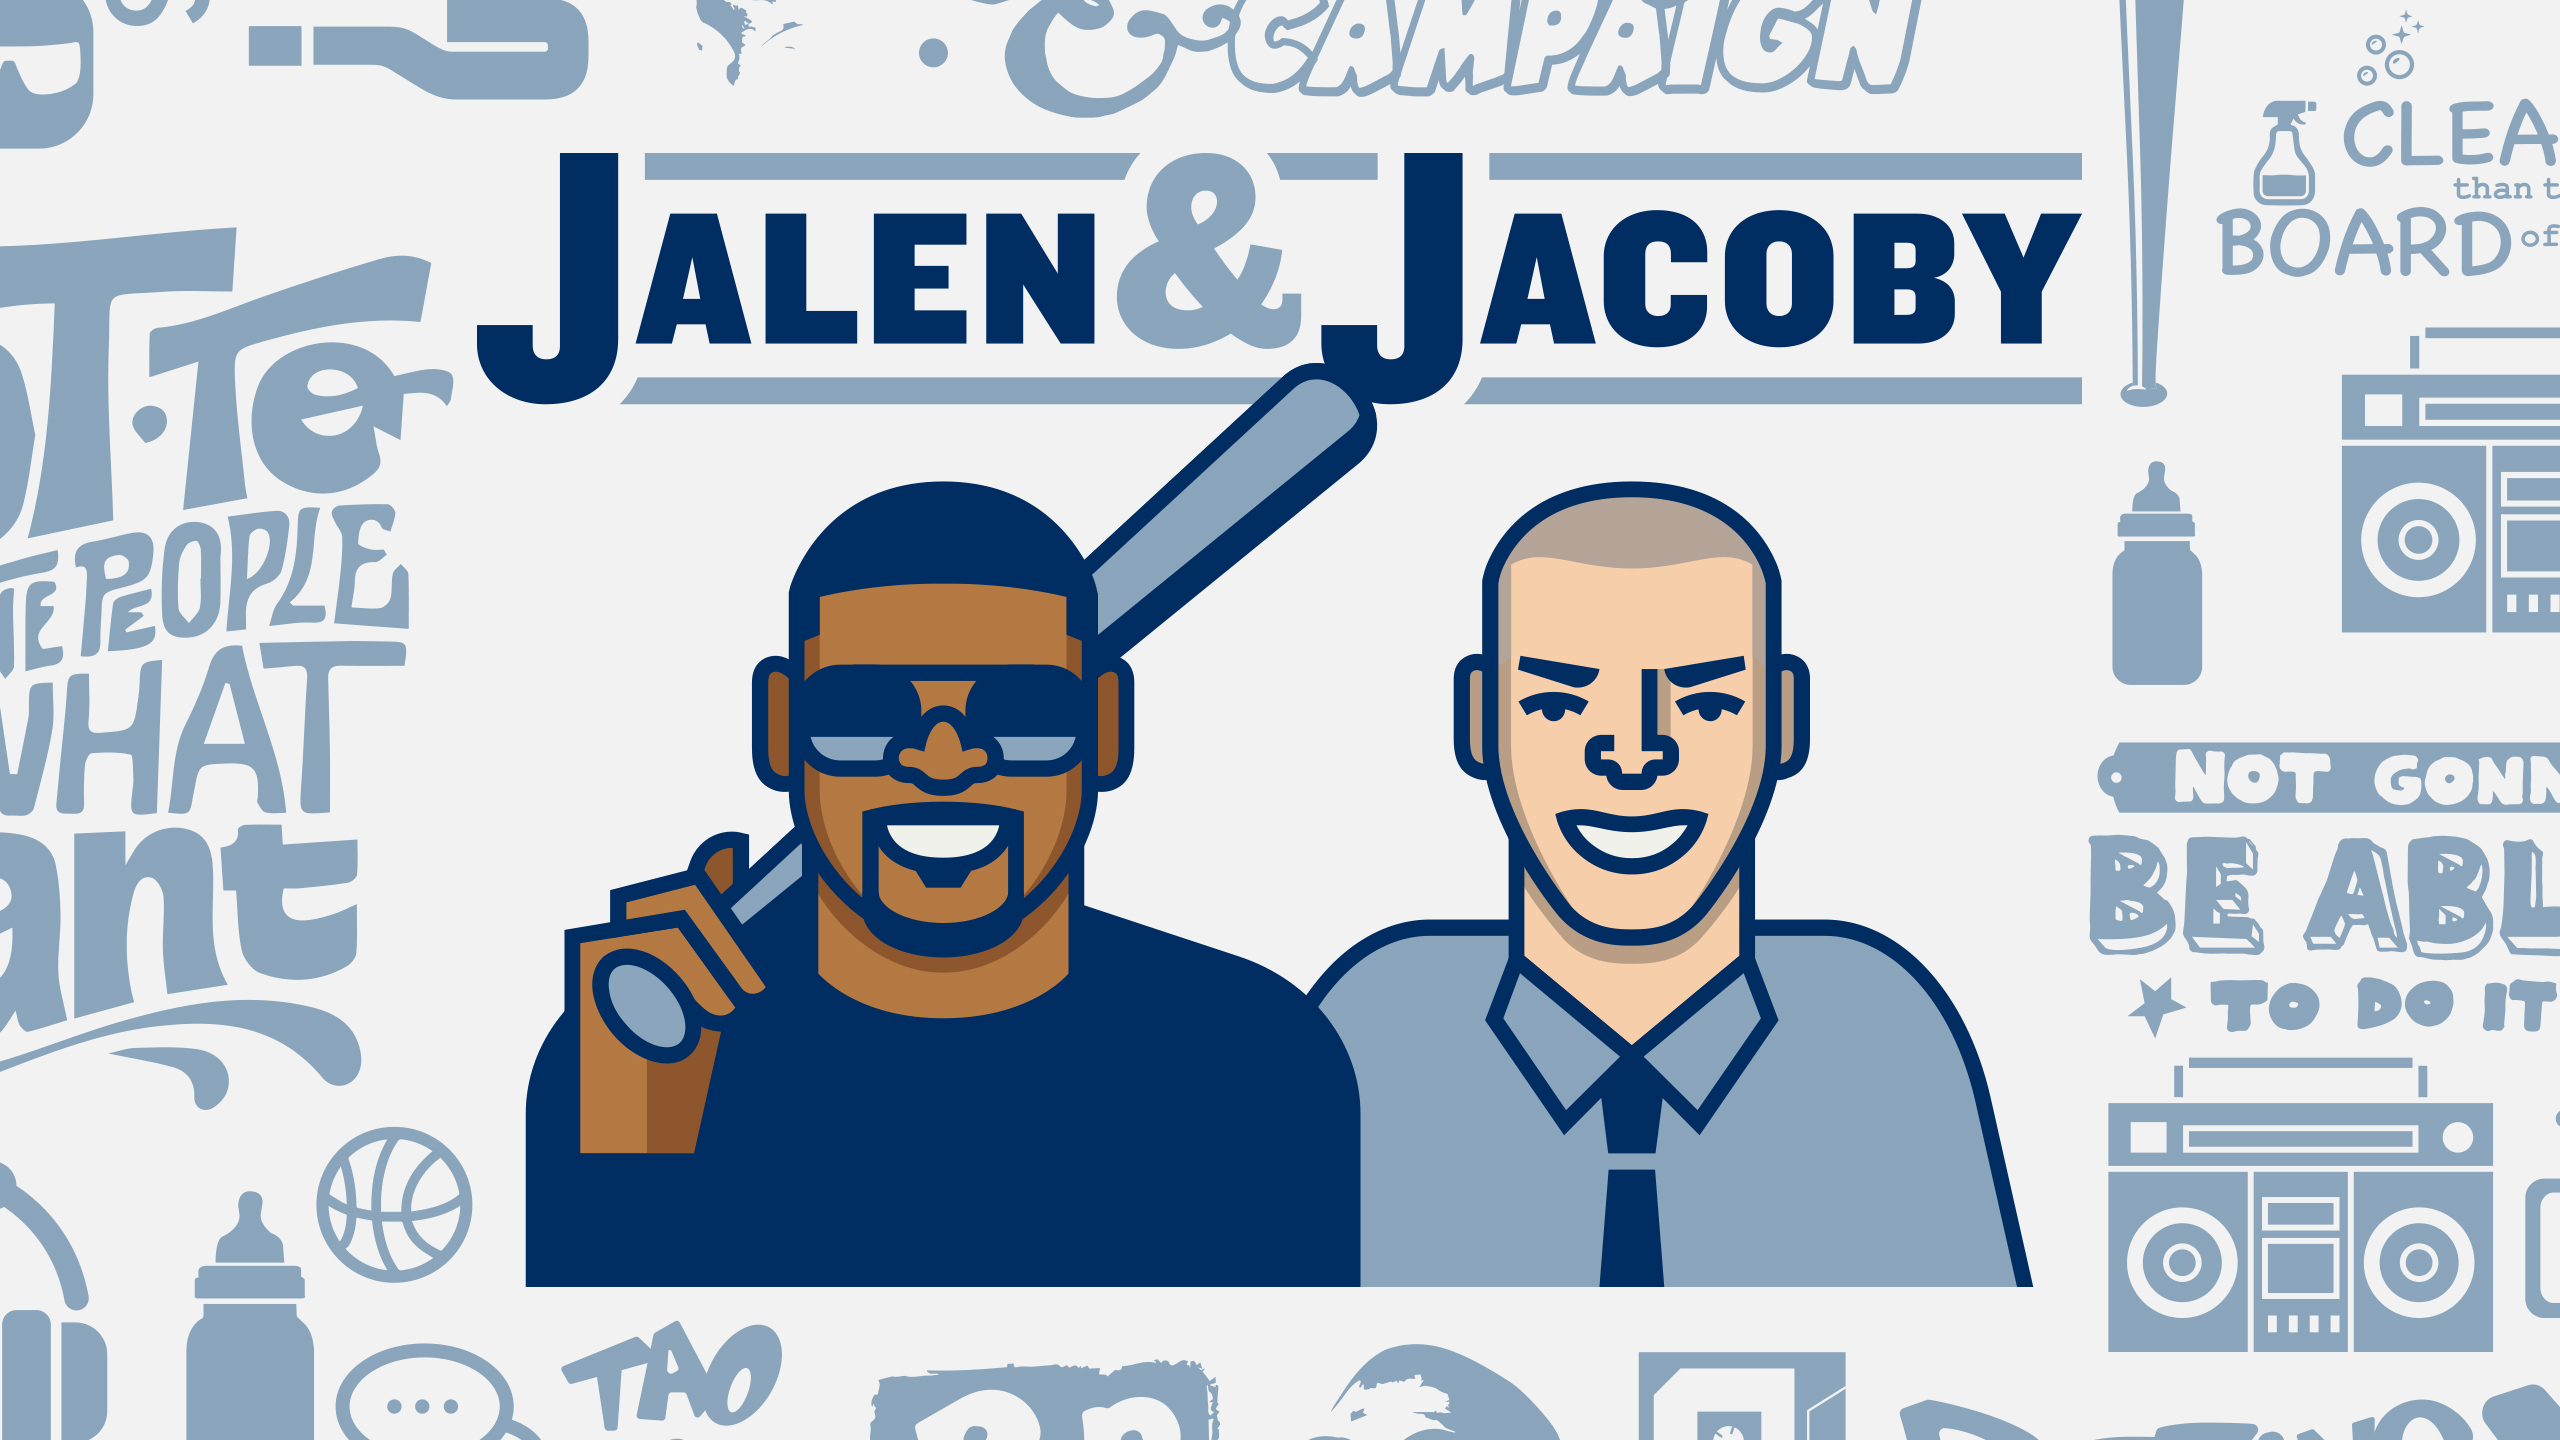 Tue, 10/23 - Jalen & Jacoby